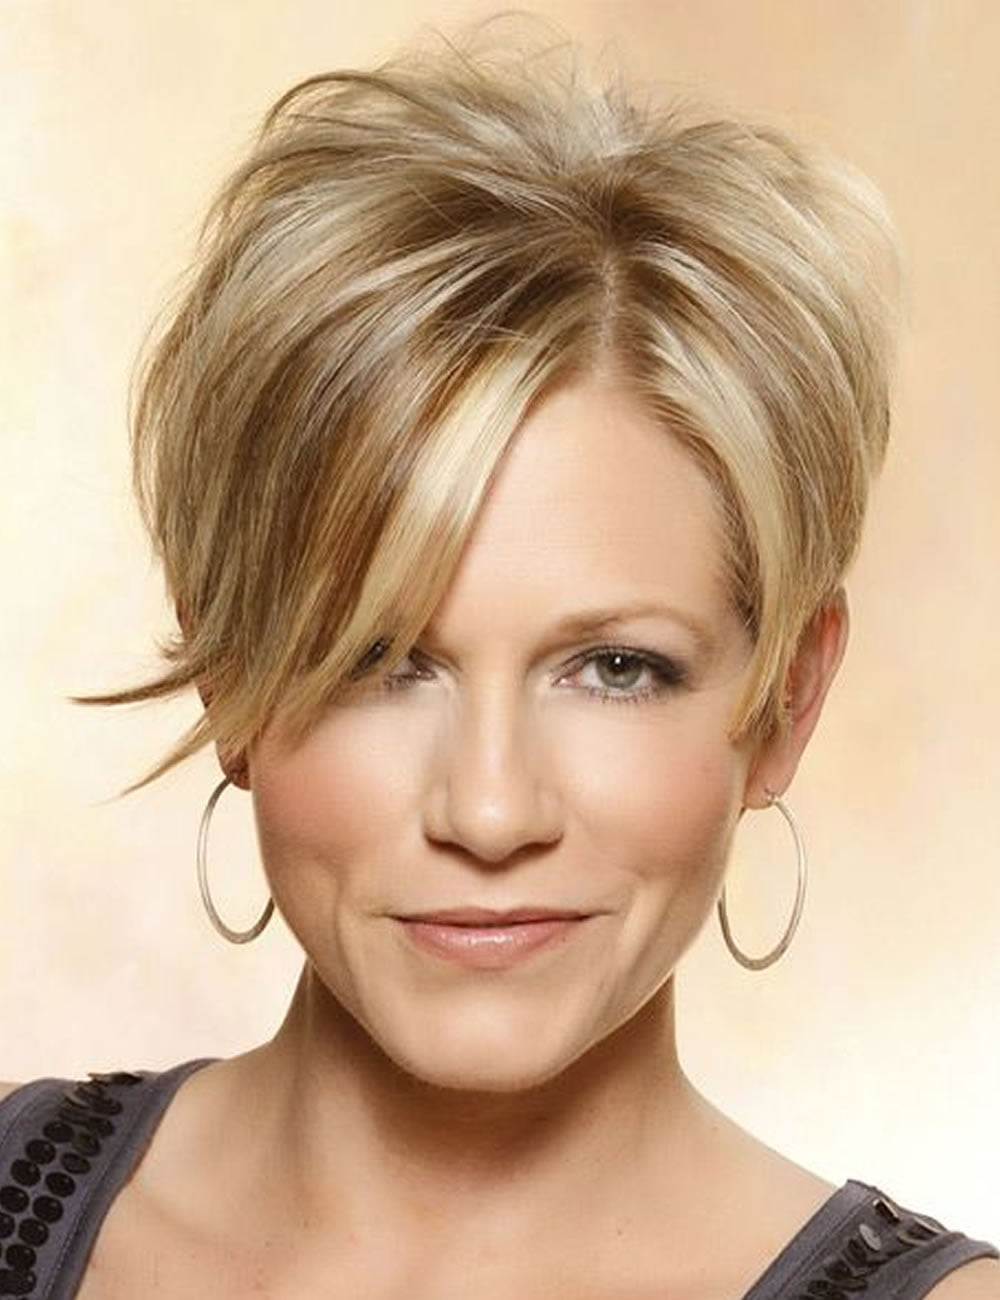 popular hair color styles 2018 hair colors for hair new hair colors to 2968